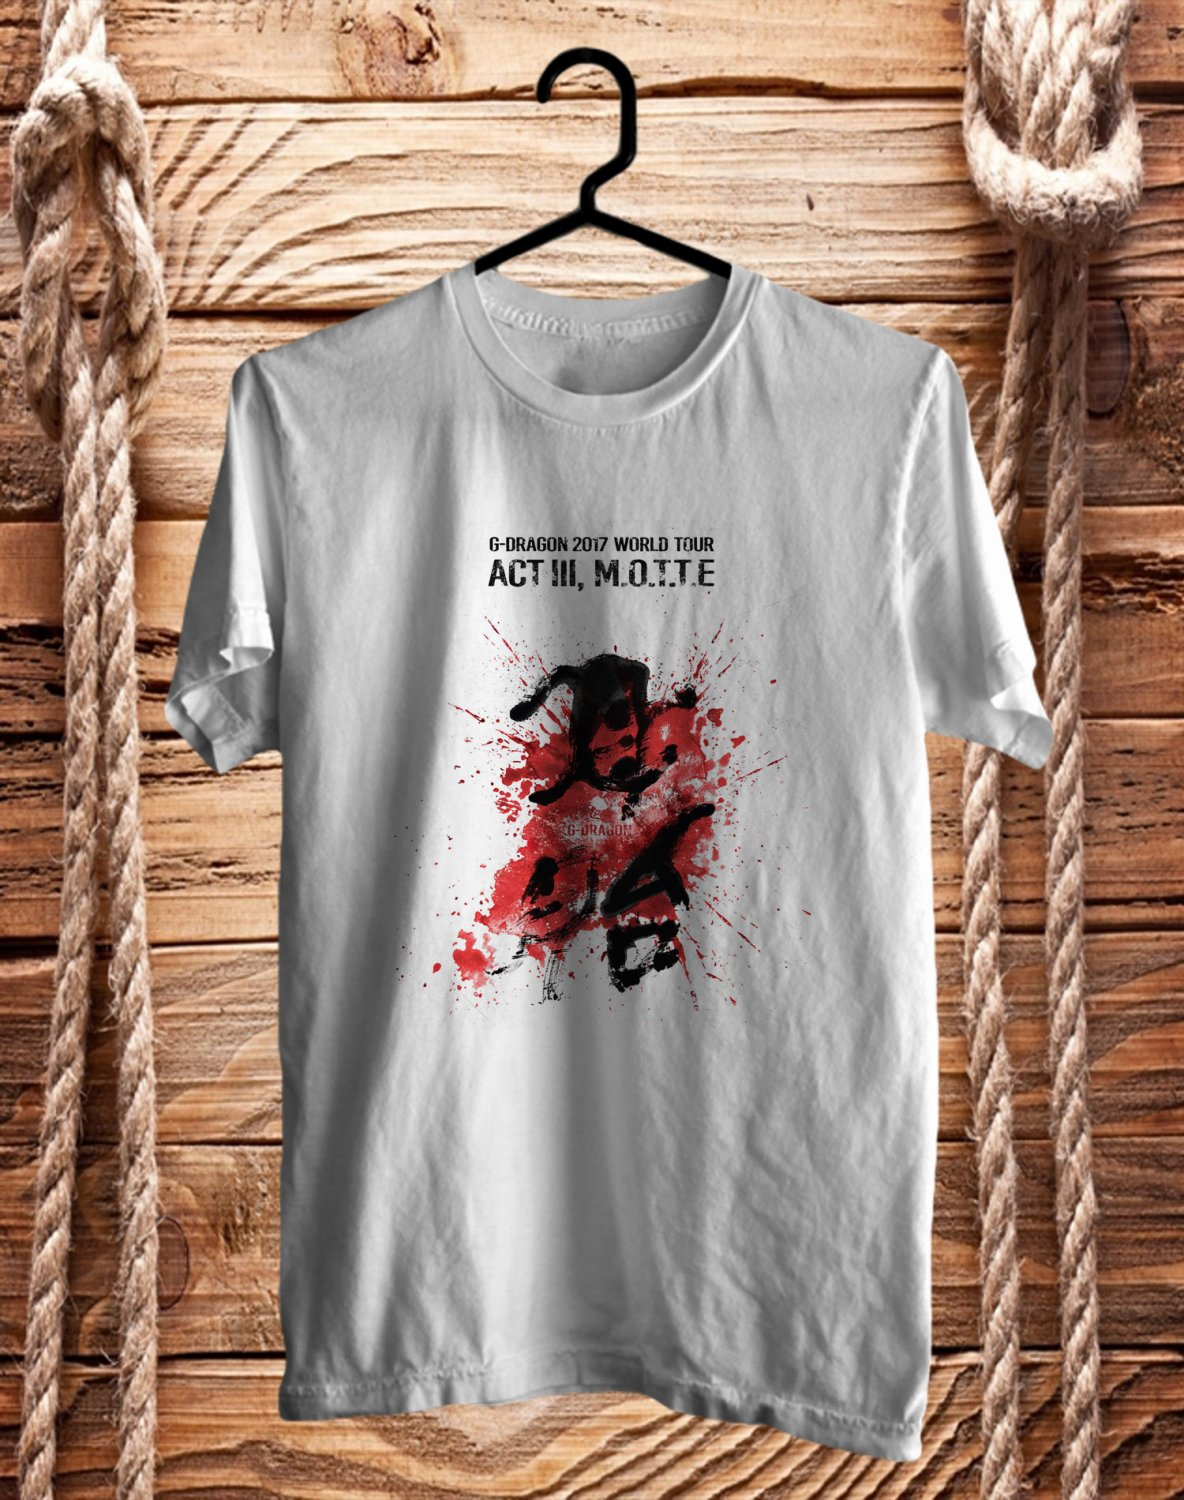 G-Dragon ACT III MOTTE WORLD TOUR 2017 White Tee's Front Side by Complexart z1